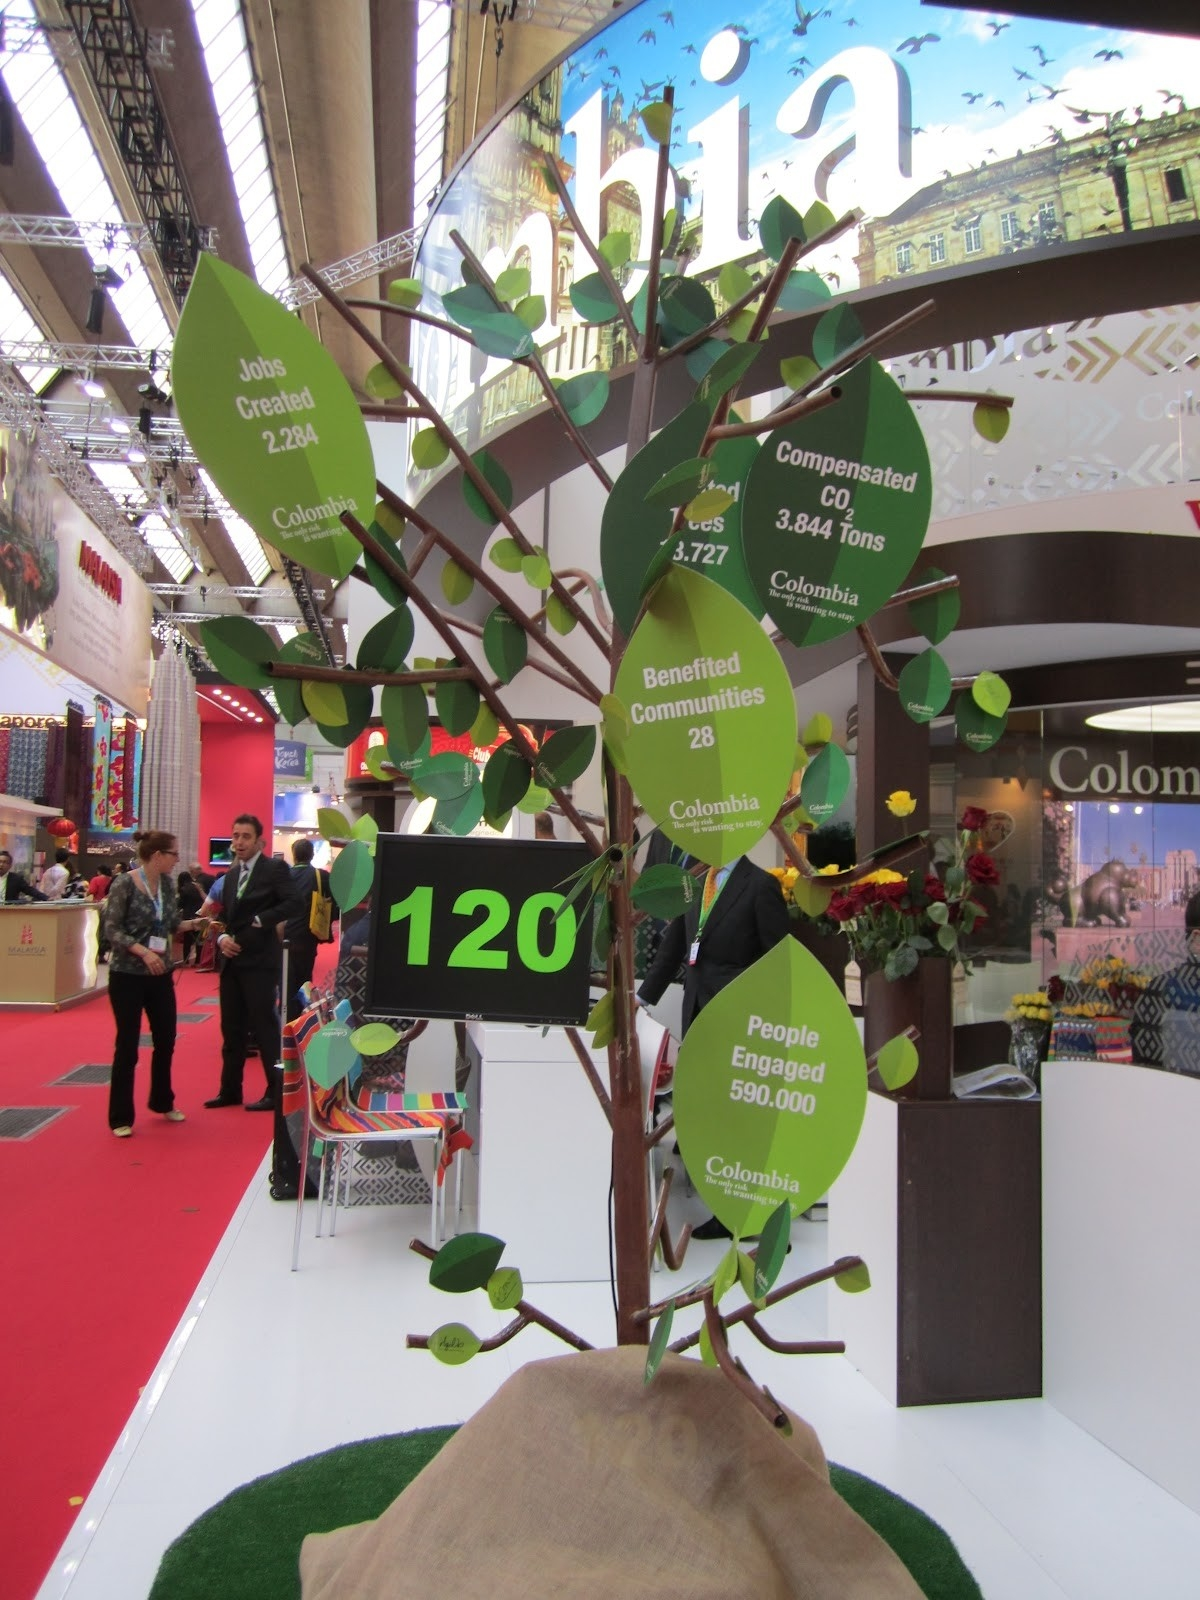 26 Earth Day Event Inspirations   Eventcellany with regard to Earth Day Event Ideas 36907